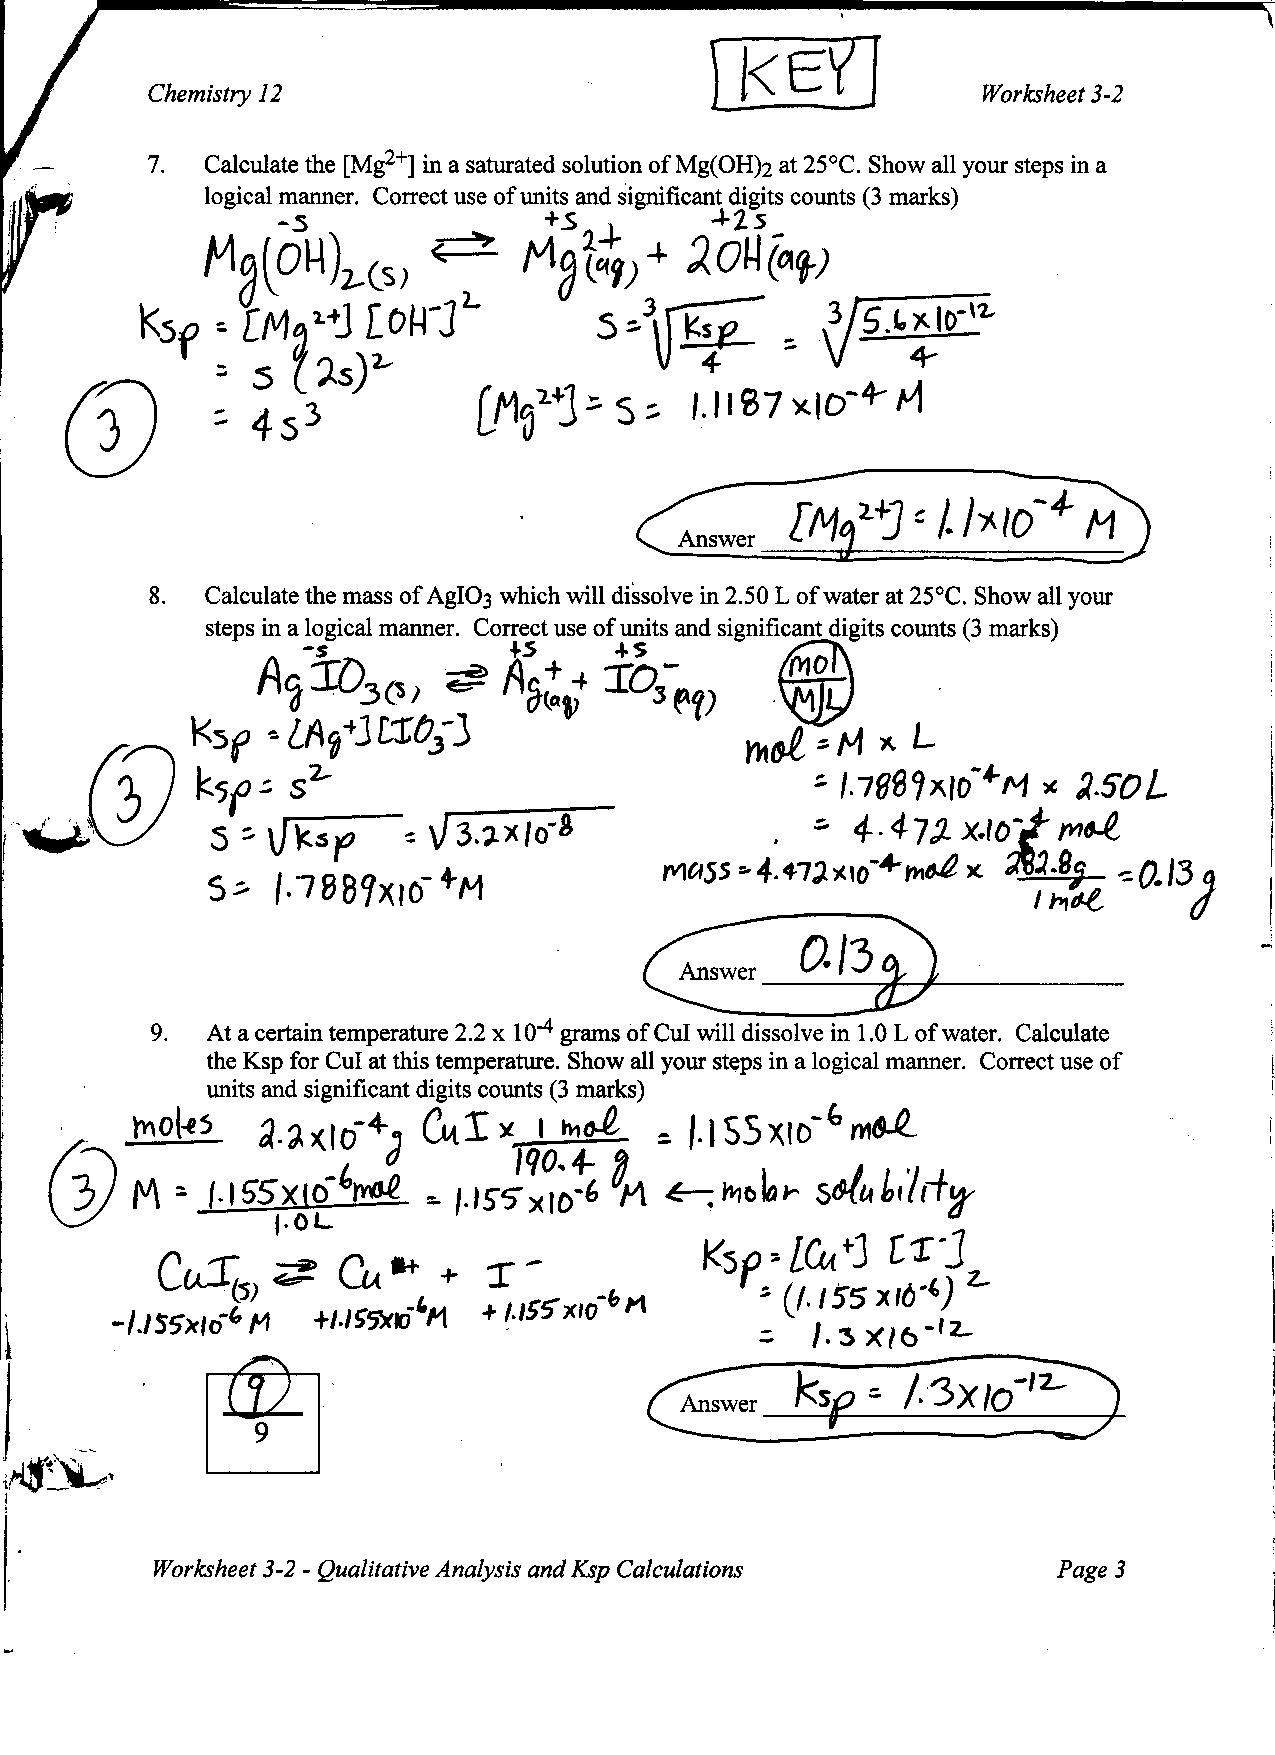 32 Stoichiometry Problems Chem Worksheet 12 2 Answer Key